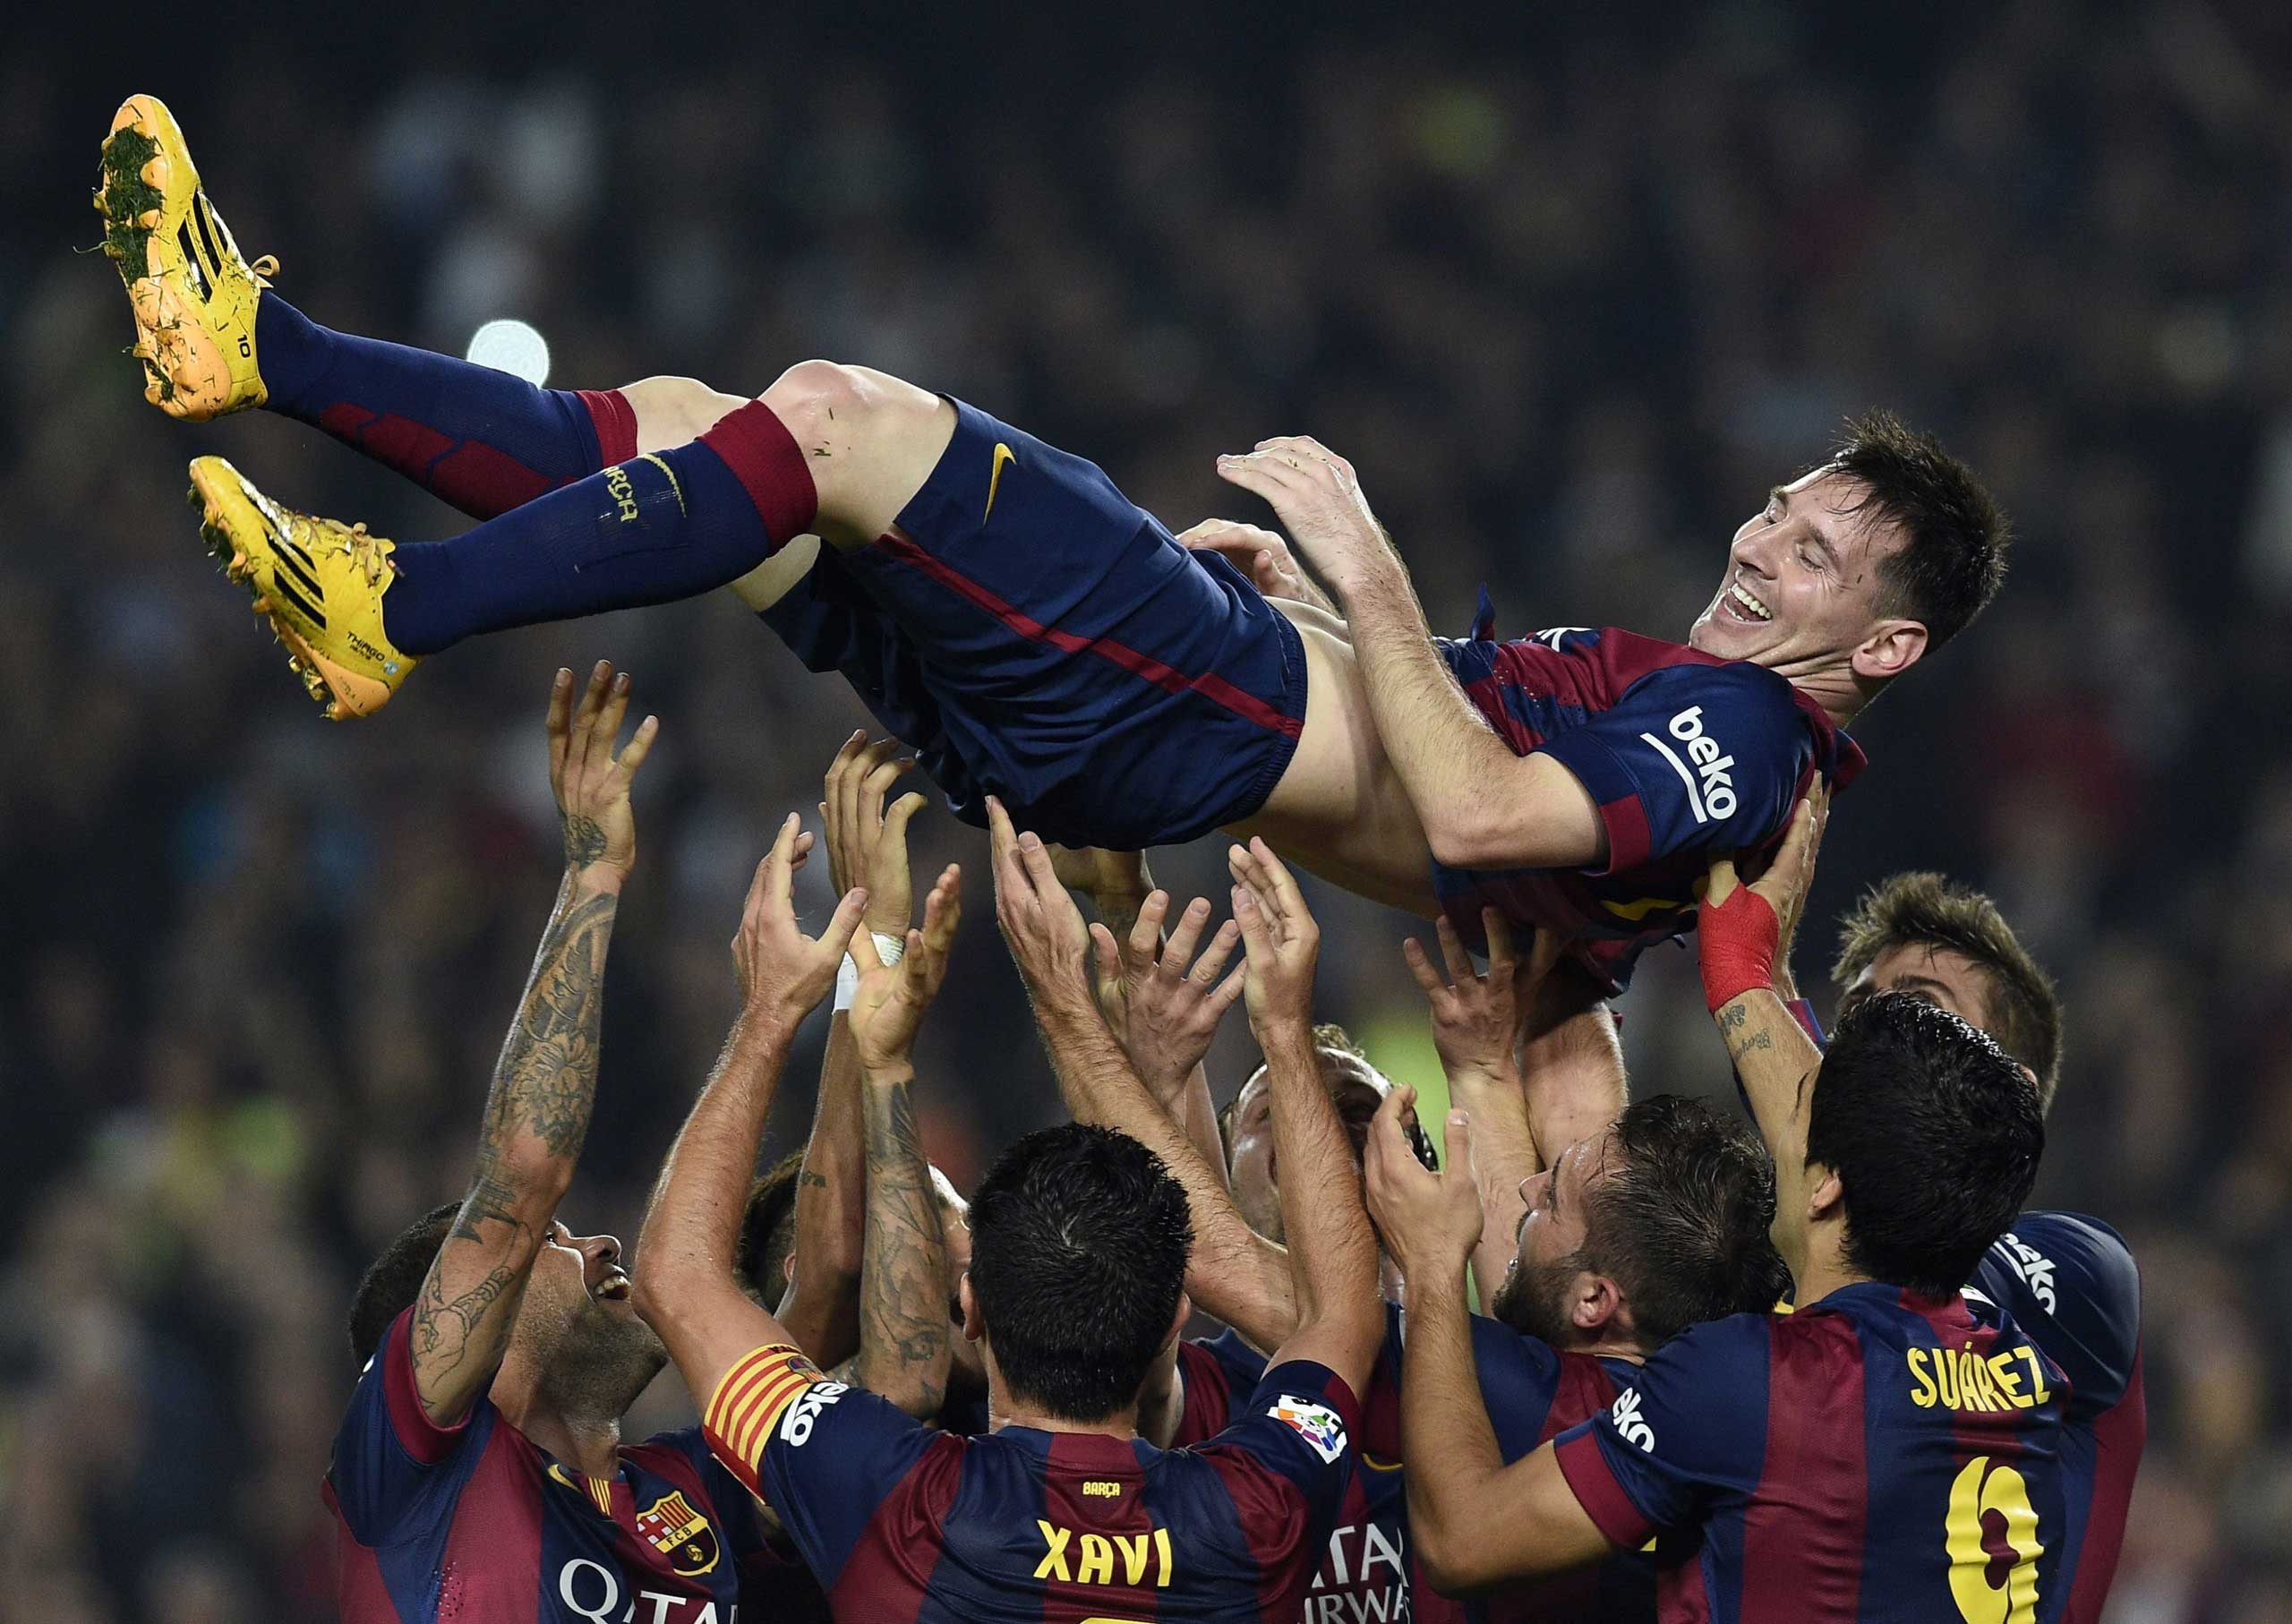 Nov. 22, 2014. Barcelona's Argentinian forward Lionel Messi is thrown into the air by his teammates as they celebrate his new record after he scored during the Spanish league football match FC Barcelona versus Sevilla FC at the Camp Nou stadium in Barcelona. Lionel Messi broke Telmo Zarra's 59-year-old record as the leading goalscorer in the history of La Liga.